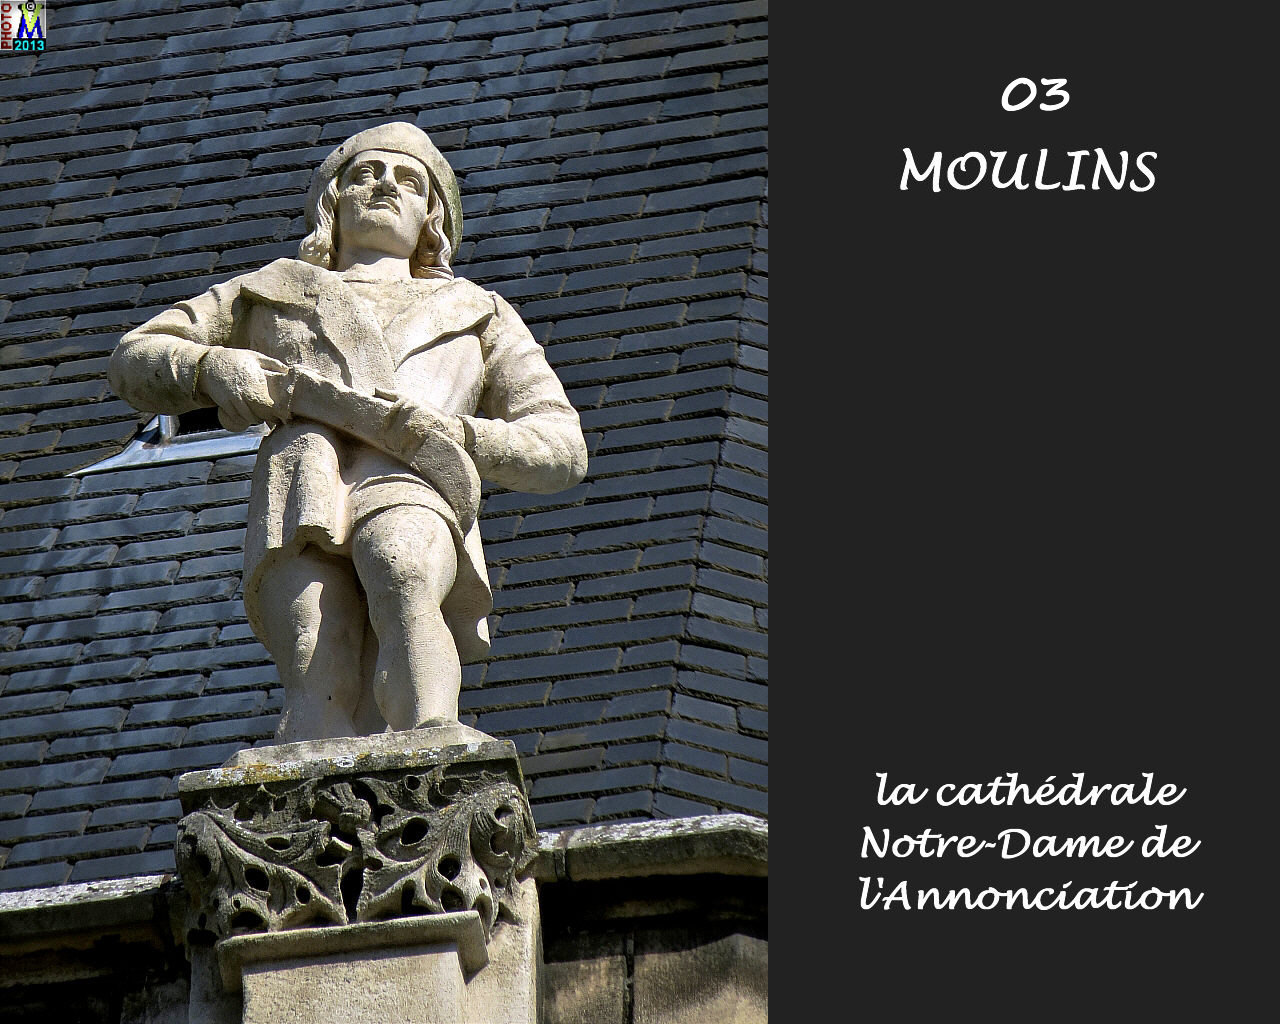 03MOULINS_cathedrale_136.jpg